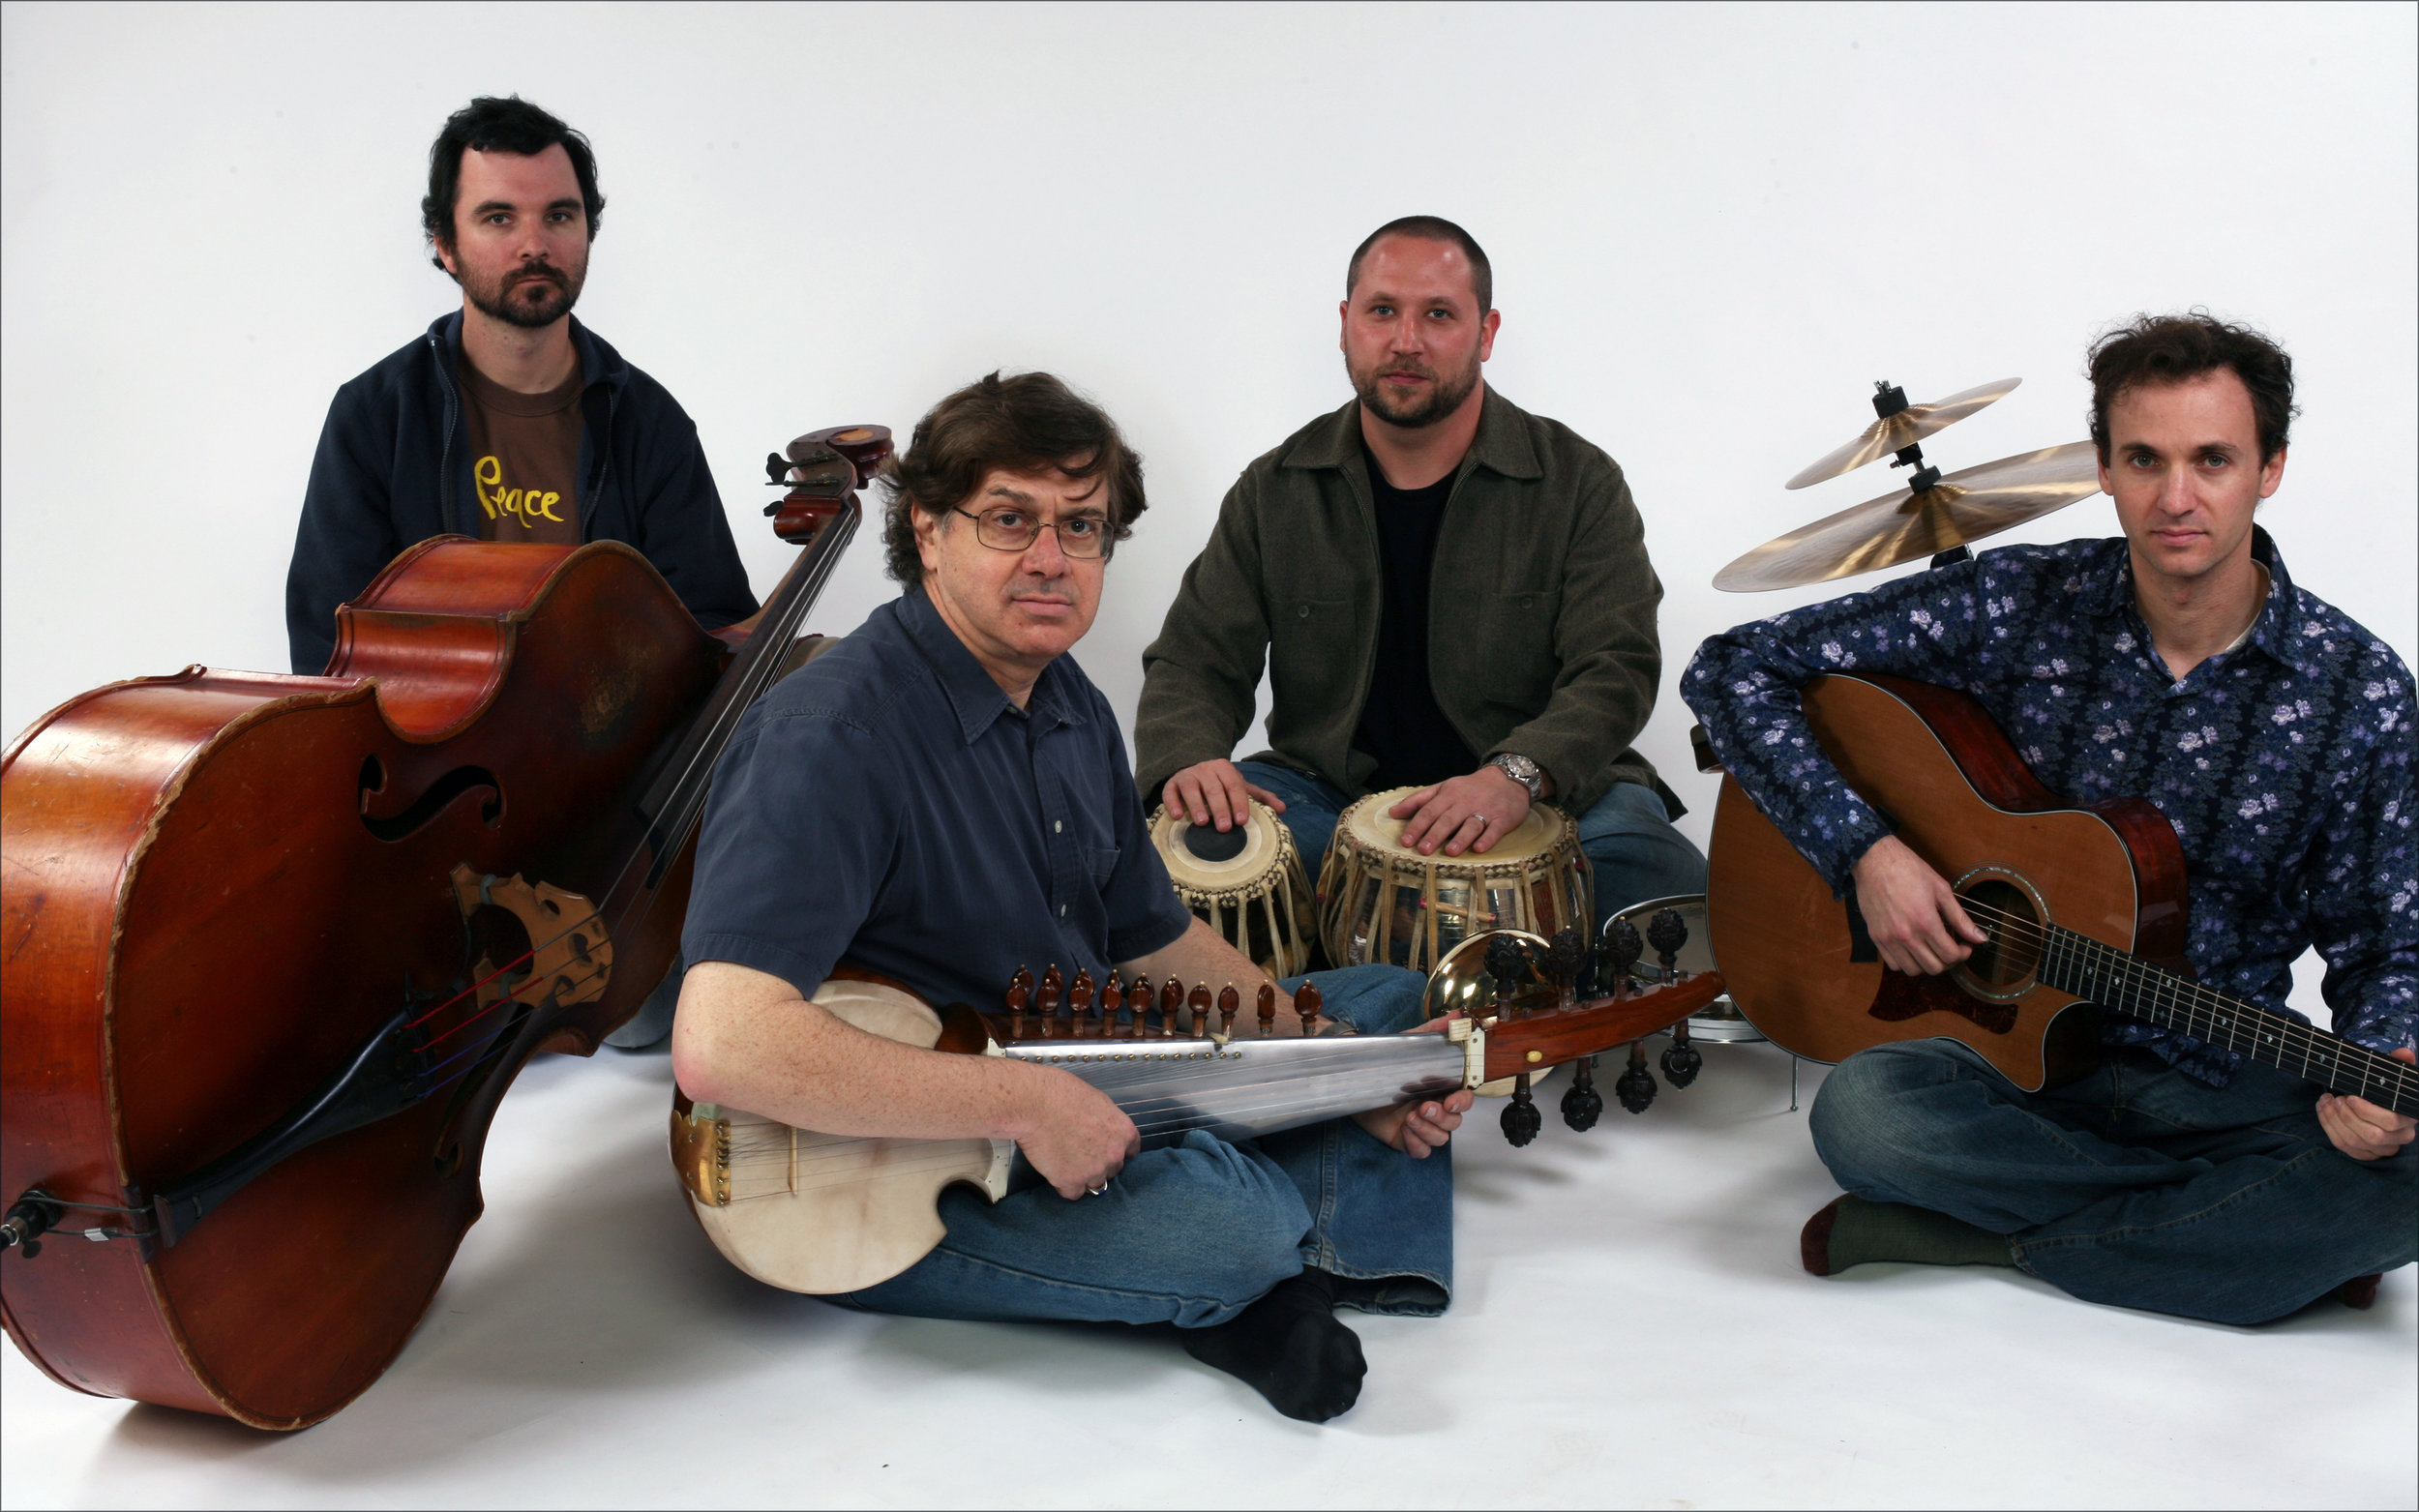 Svara: New World Music Ensemble led by Sarode player David Trasoff.  L-R: John Graves, David Trasoff, Randy Gloss, Robert Jacobson.  Photo by Jimmy Steinfeldt.